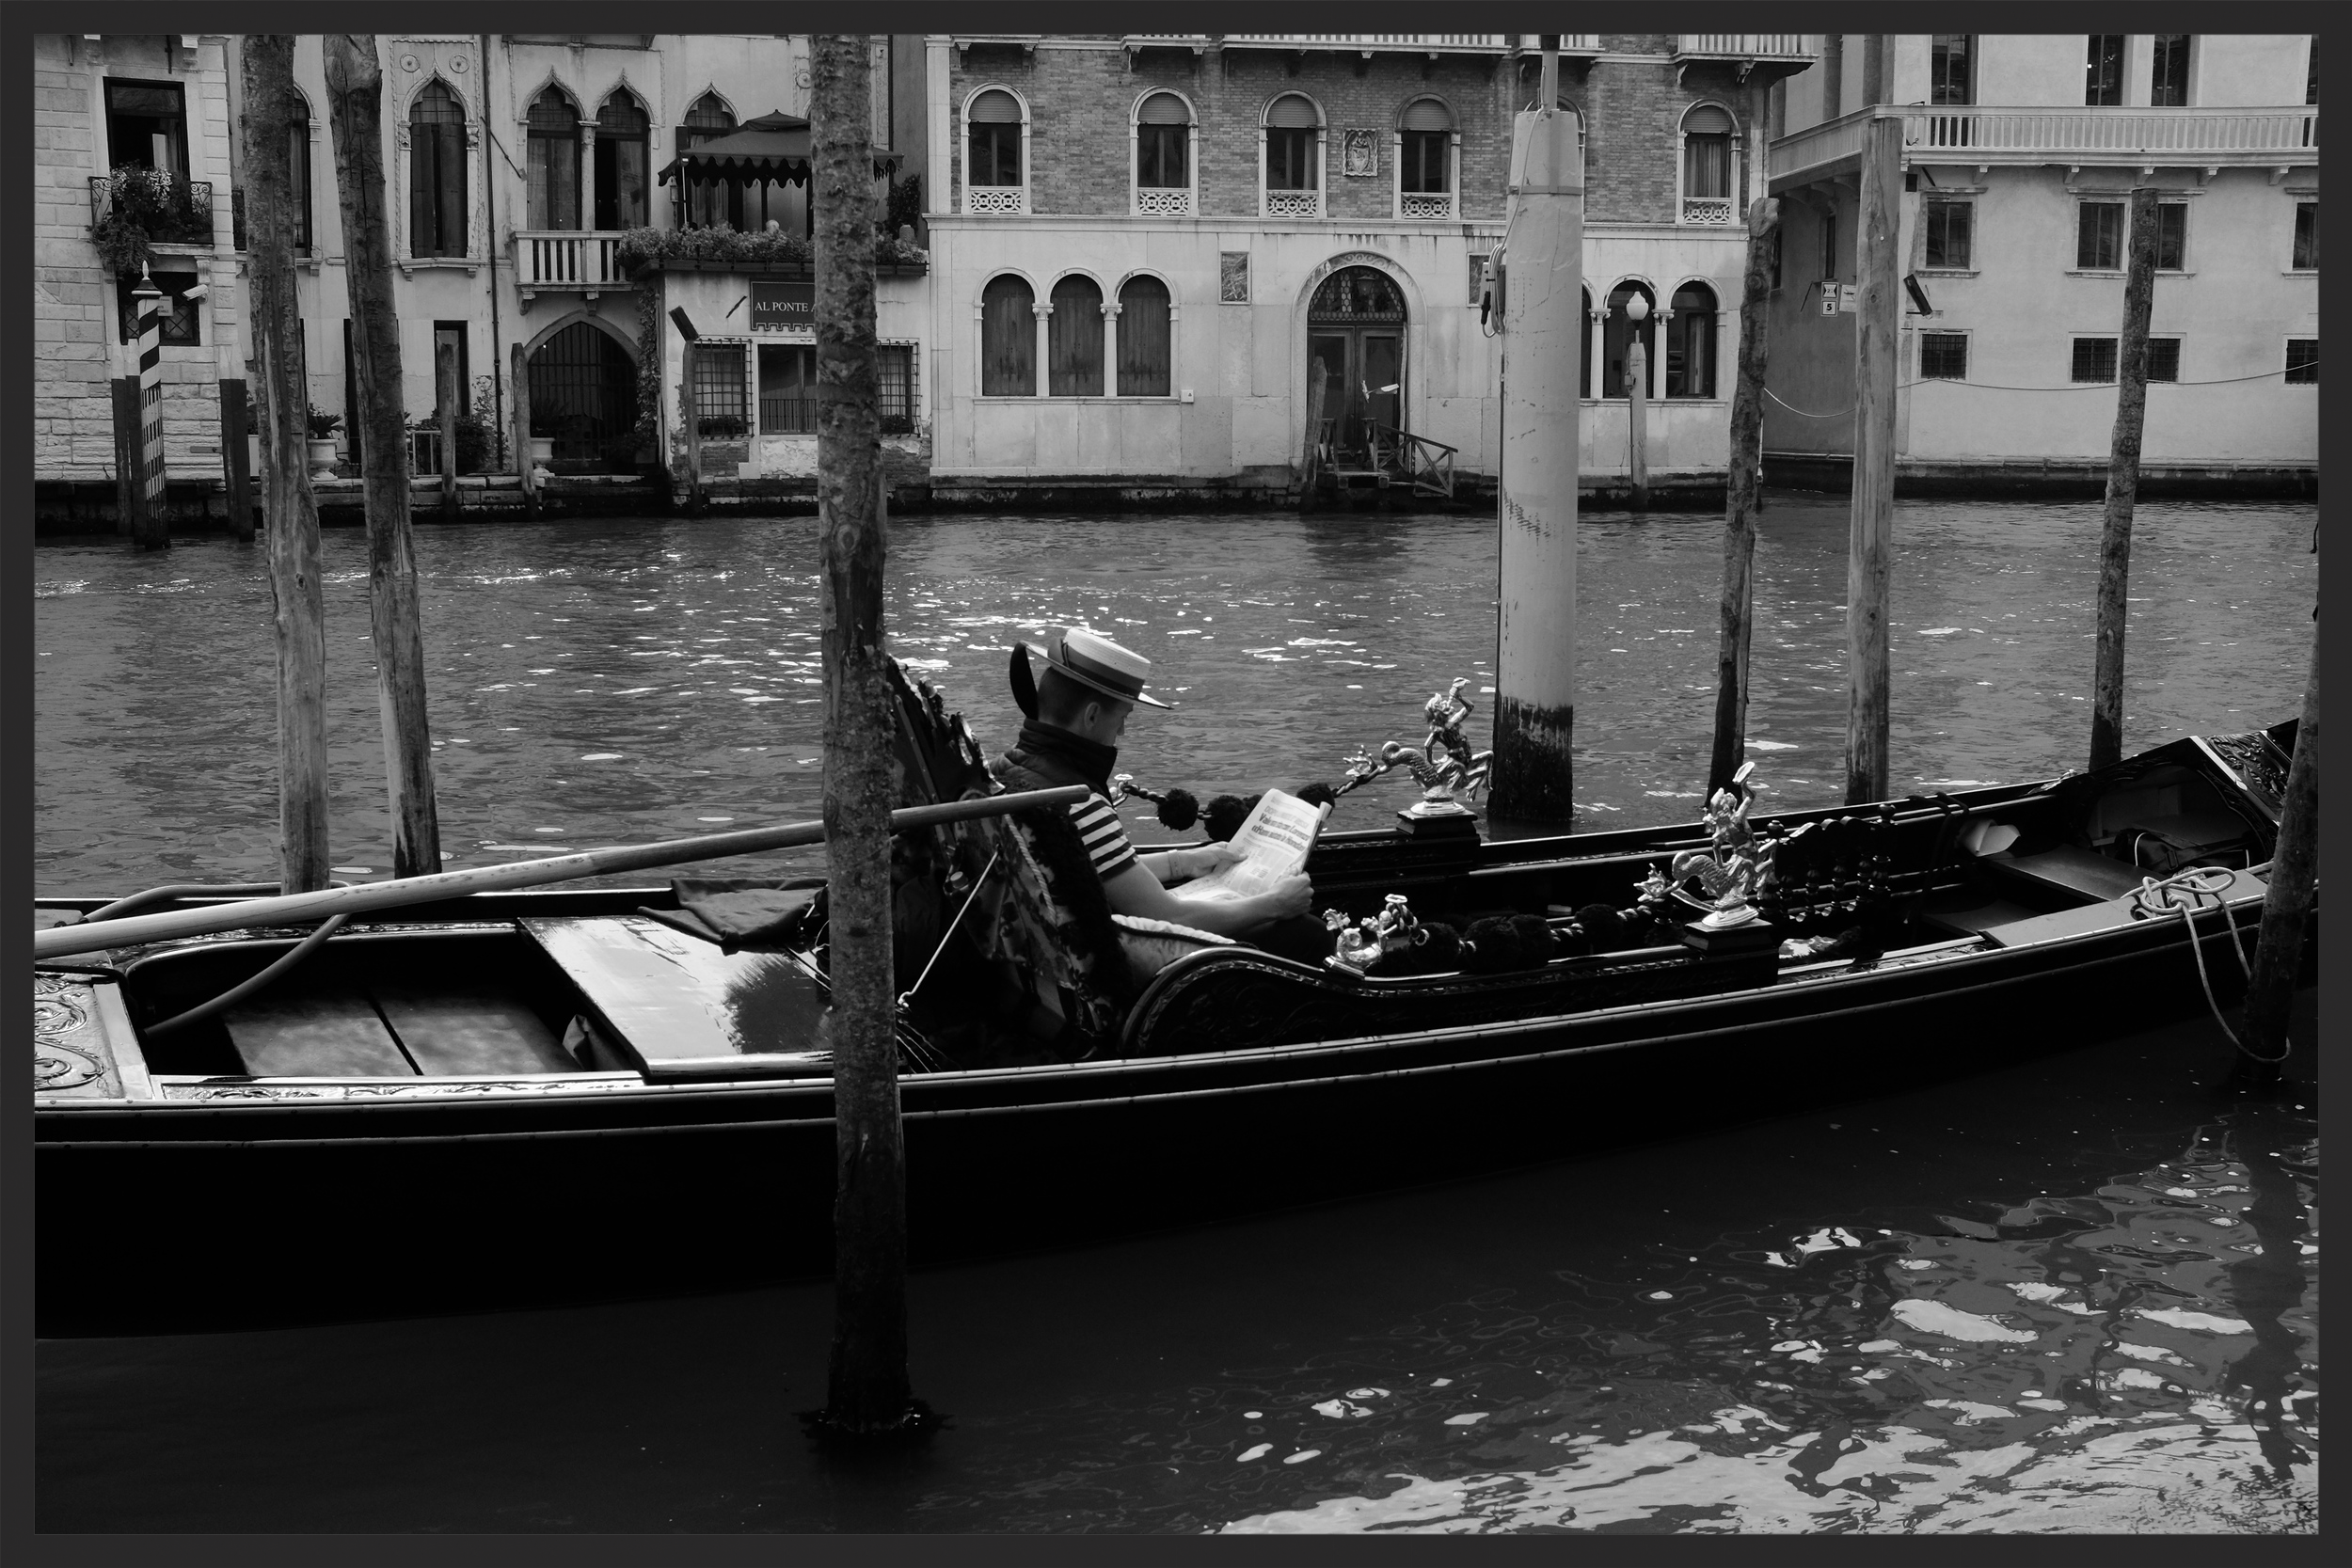 A gondolier reads the newspaper on the Grand Canal.